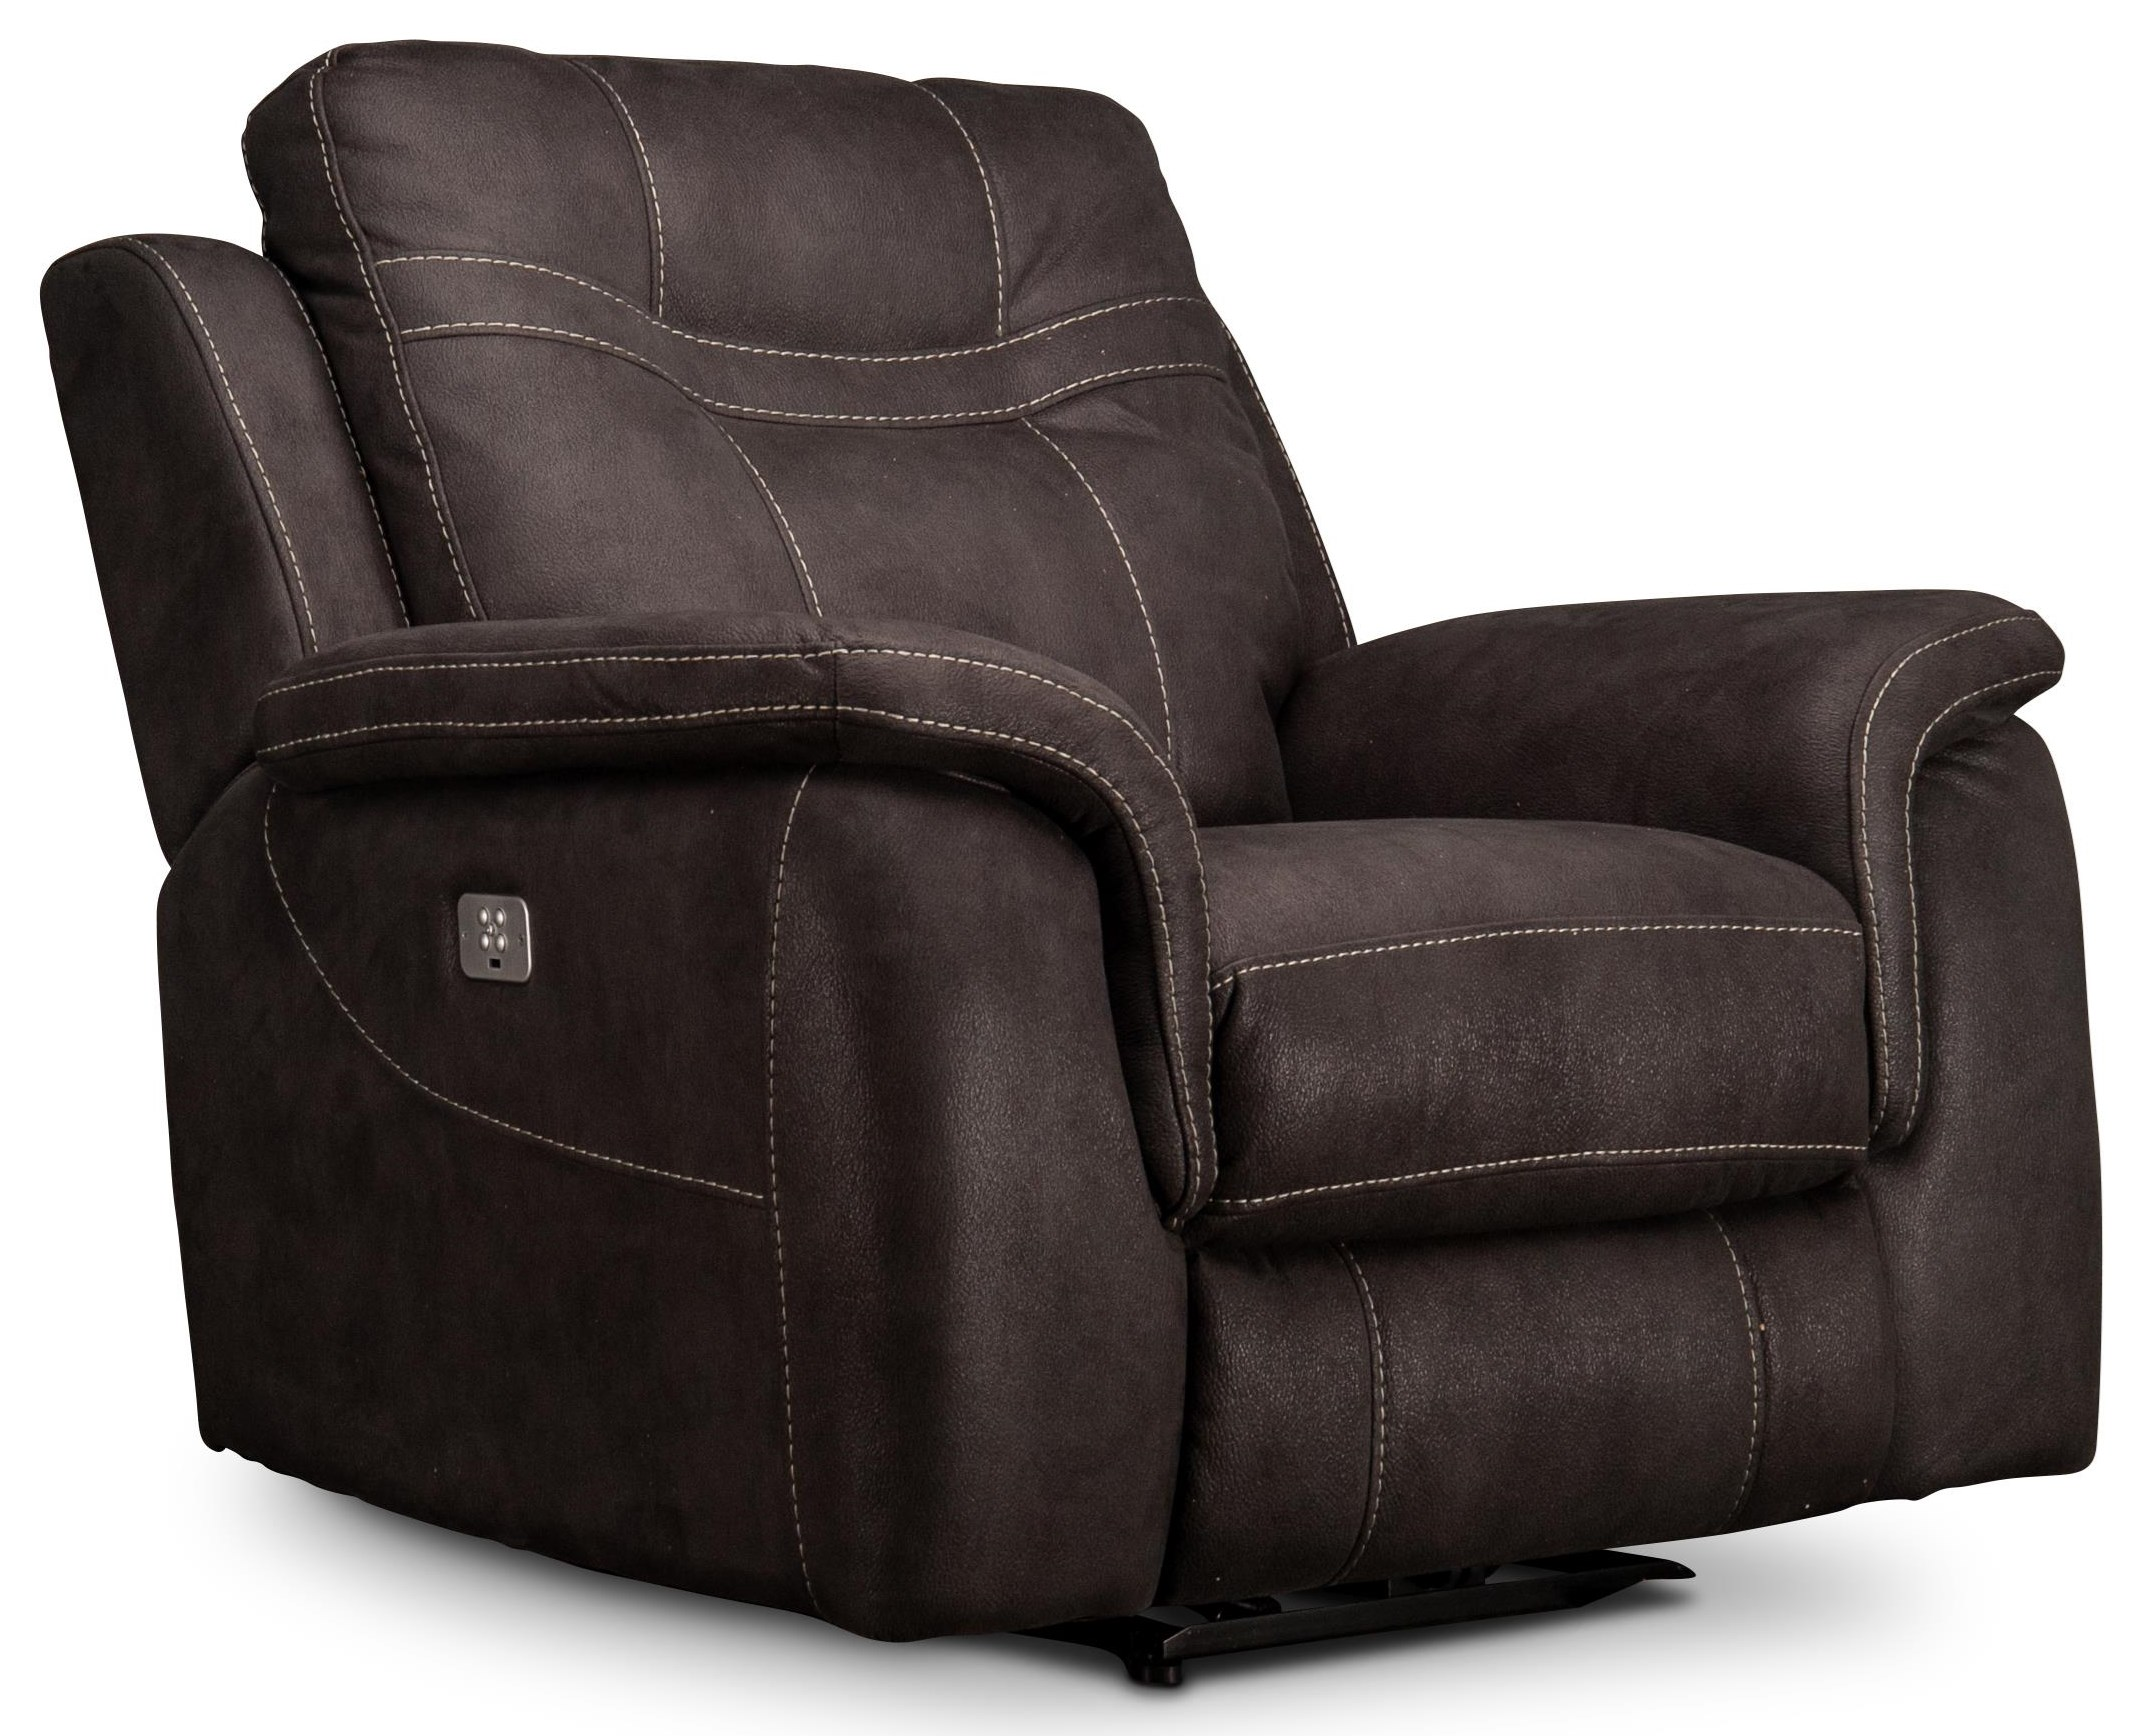 Buckley Buckley Power Recliner with Power Headrest at Morris Home